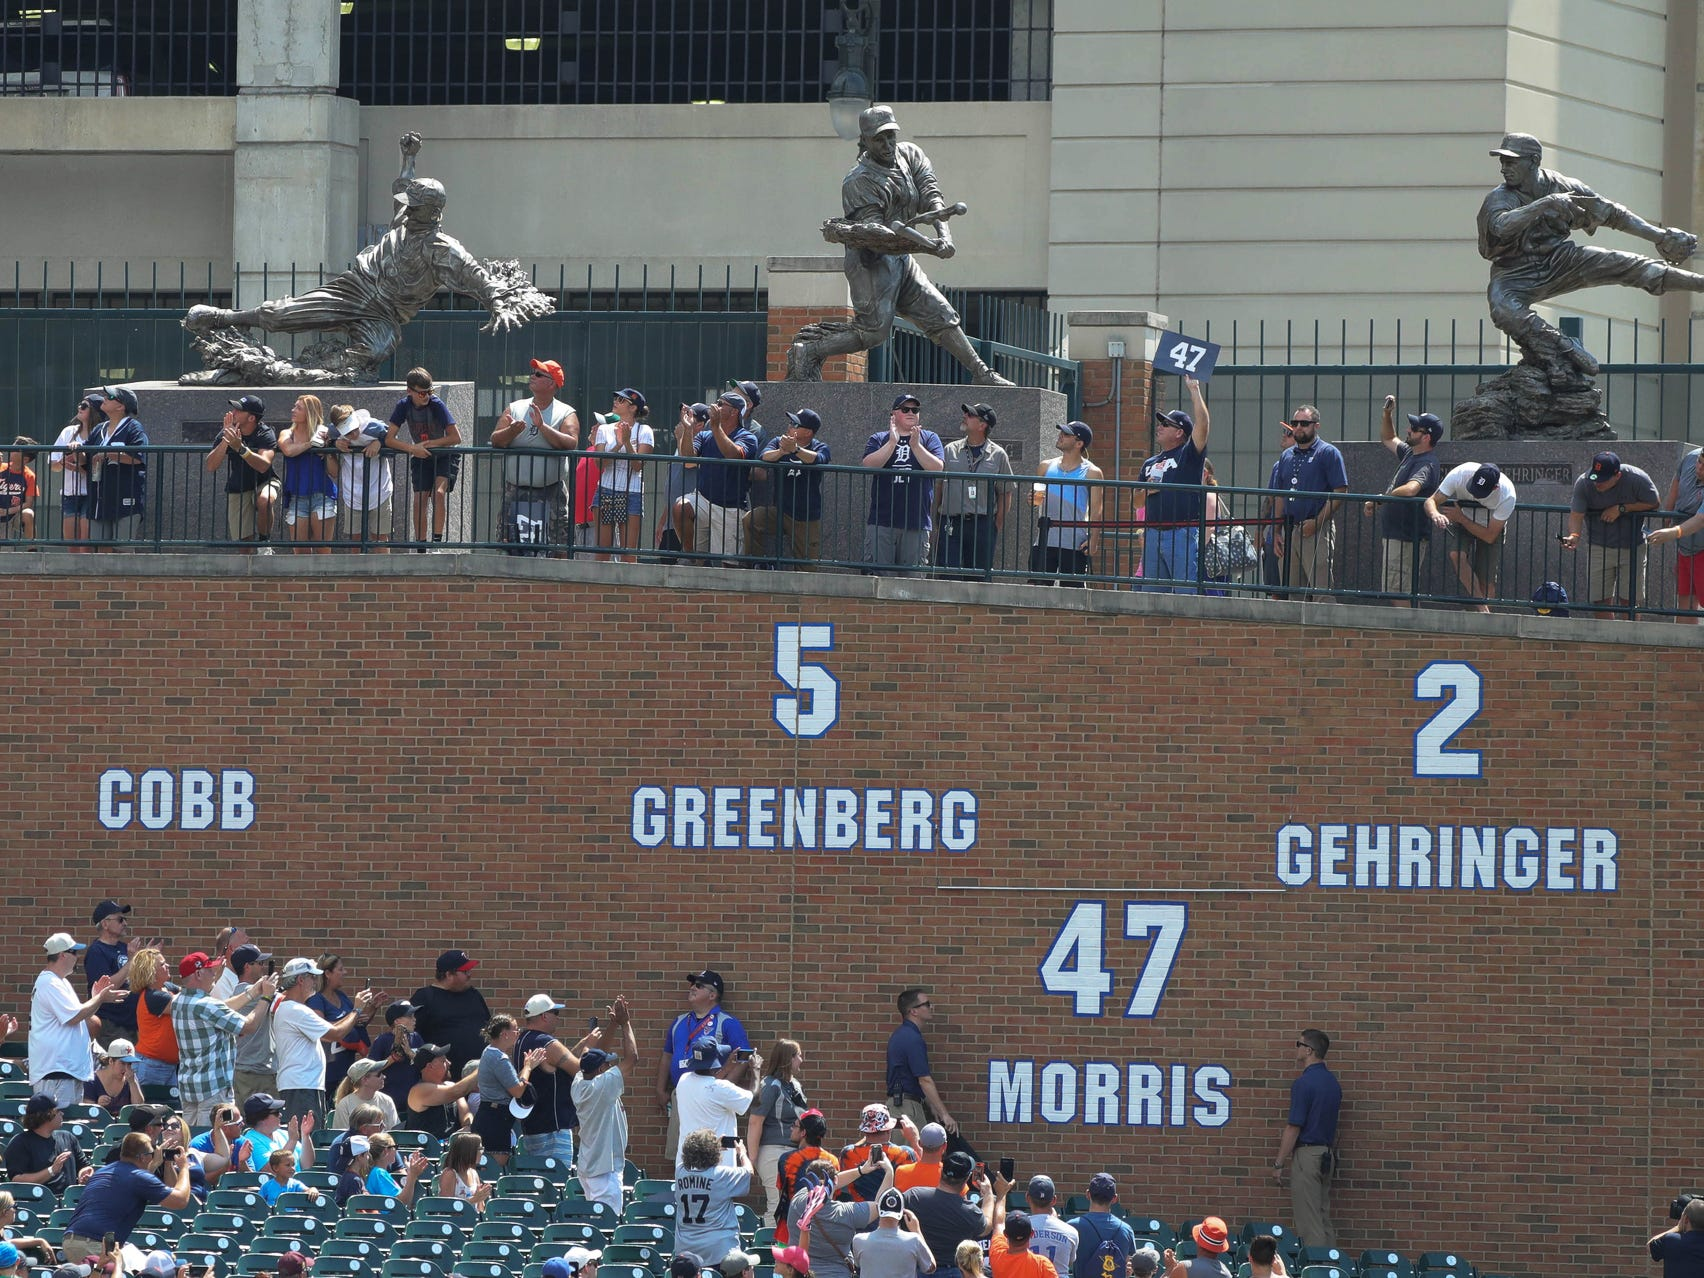 Detroit Tigers Hall of Fame pitcher Jack Morris' number was retired during a ceremony before the start of the Tigers game against Minnesota on Sunday, August 12, 2018, at Comerica Park in Detroit.